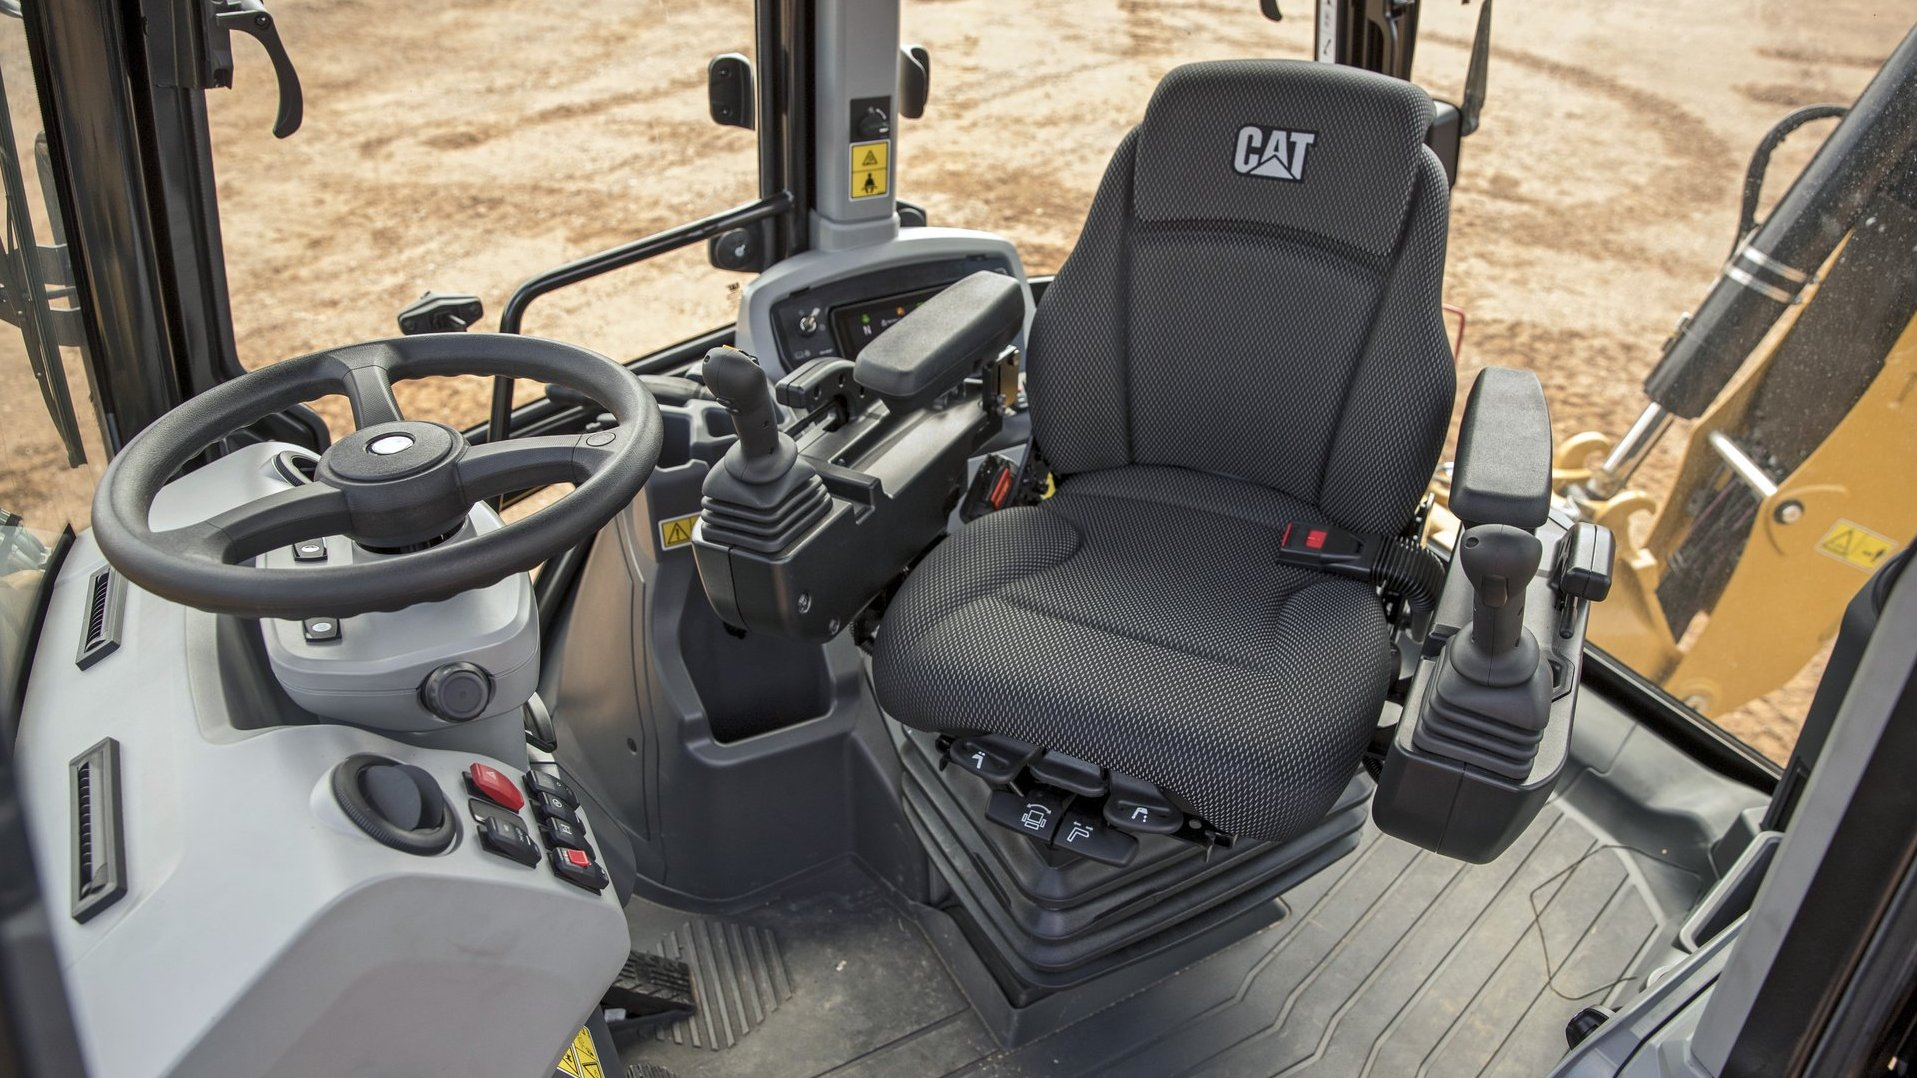 New generation Cat backhoe loader cabin interior